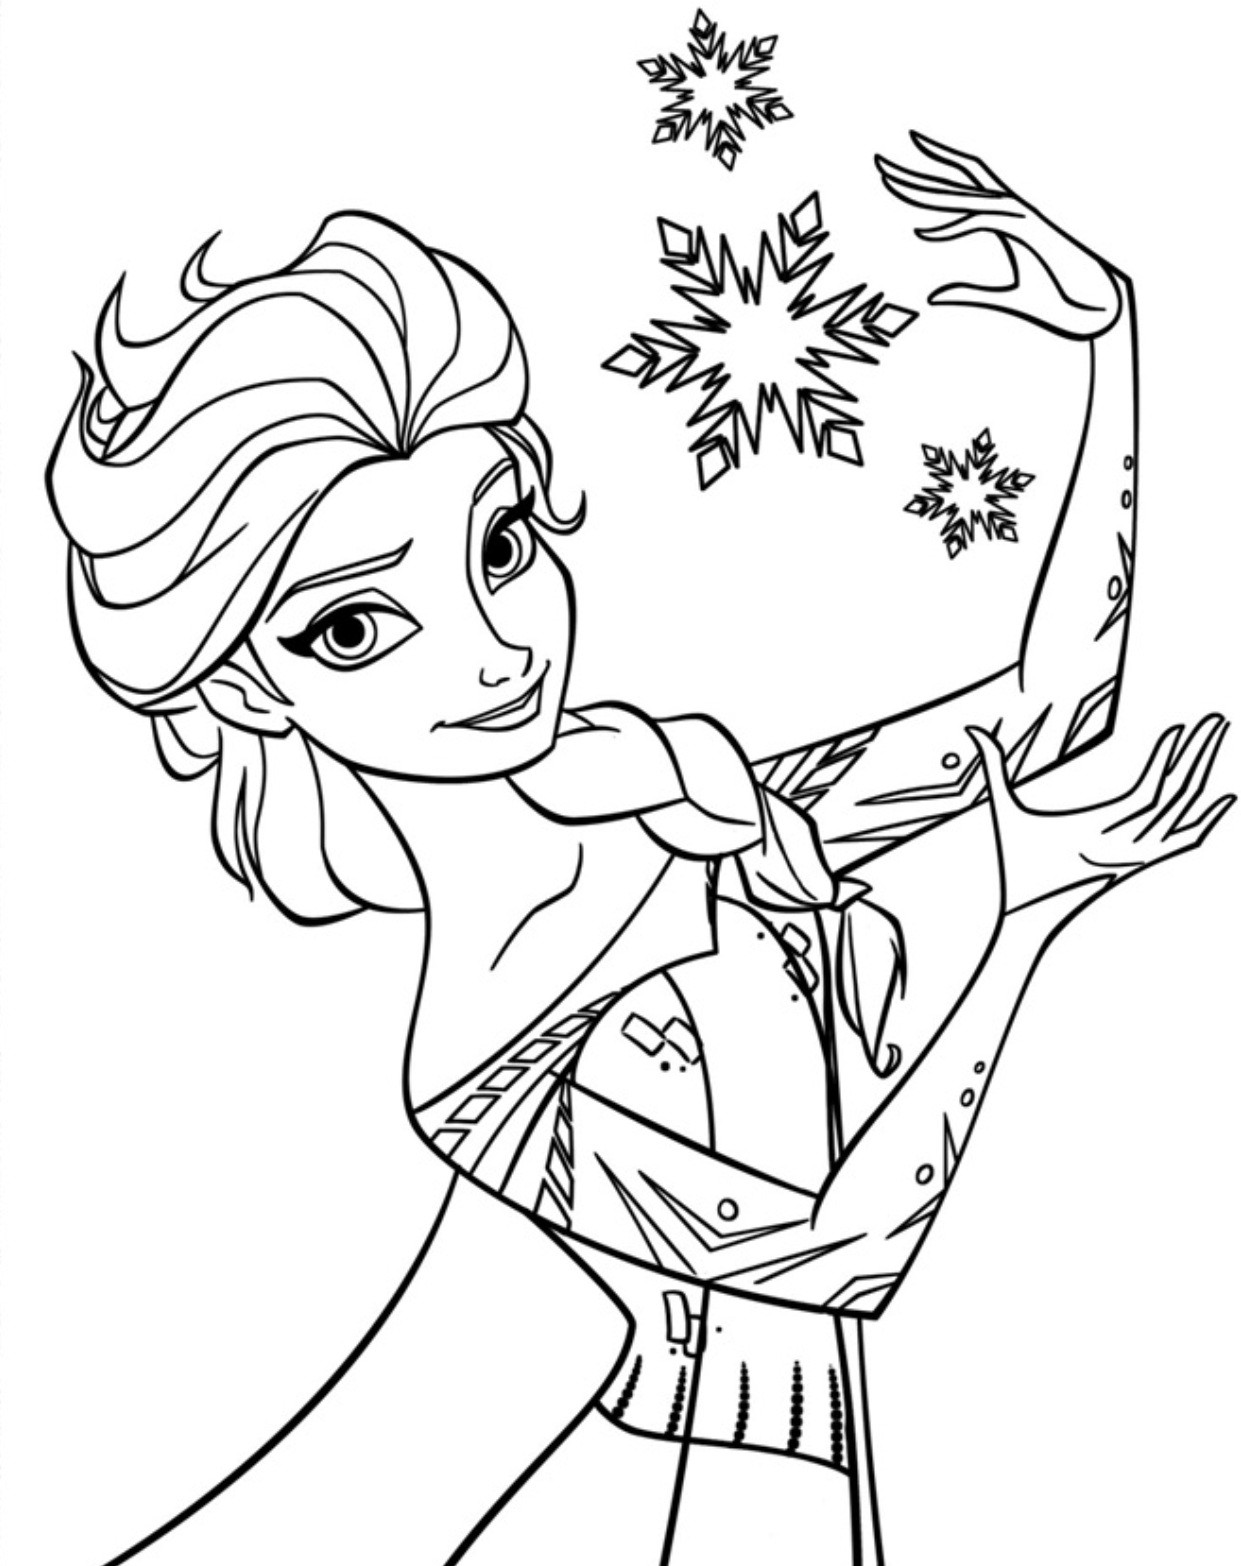 Online Coloring Sheets For Kids  Free Printable Elsa Coloring Pages for Kids Best